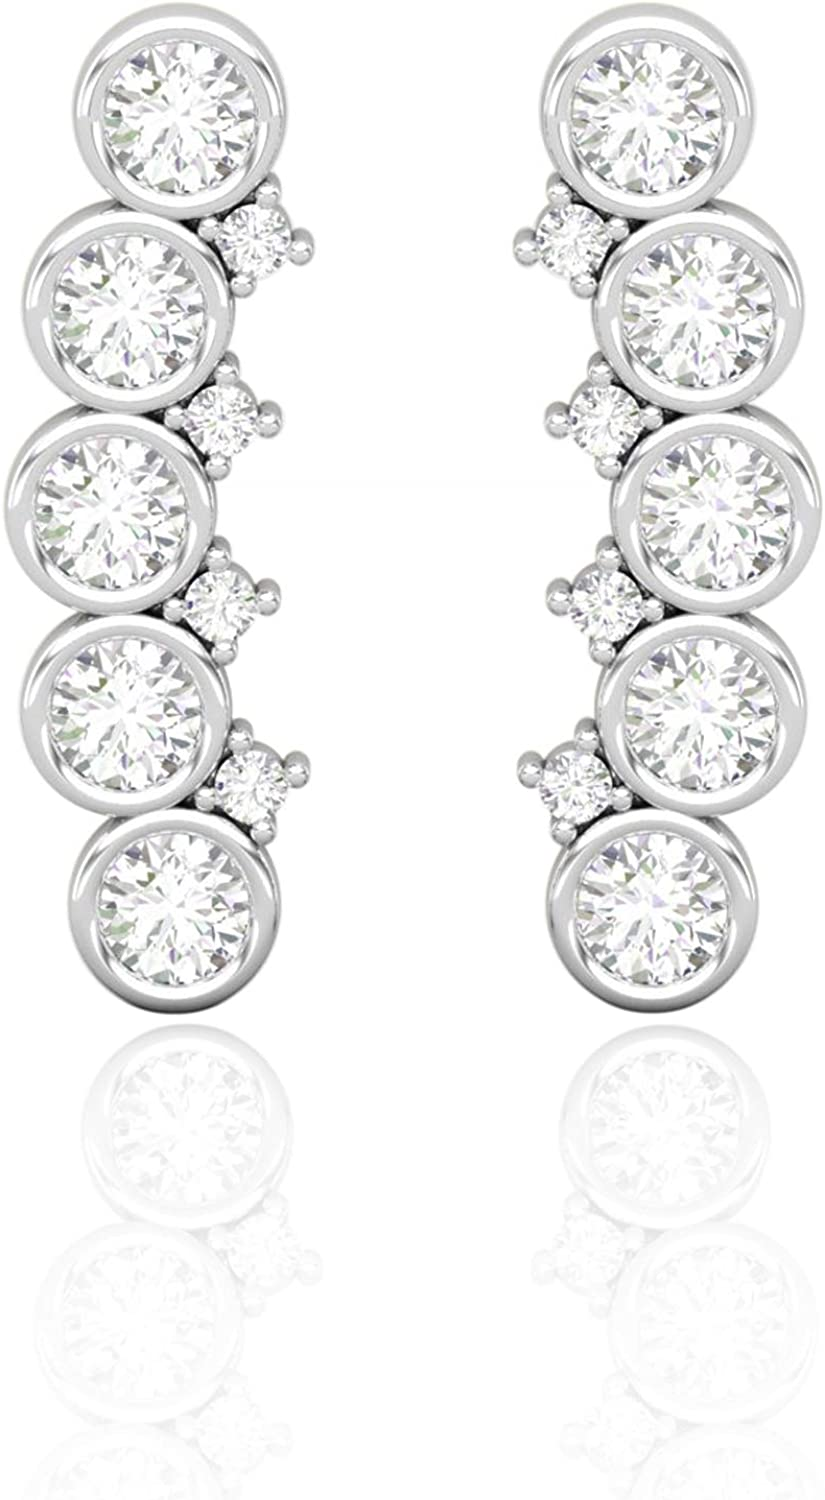 New Free Shipping Diamond Helix Piercing Earring Cu Weekly update Curved